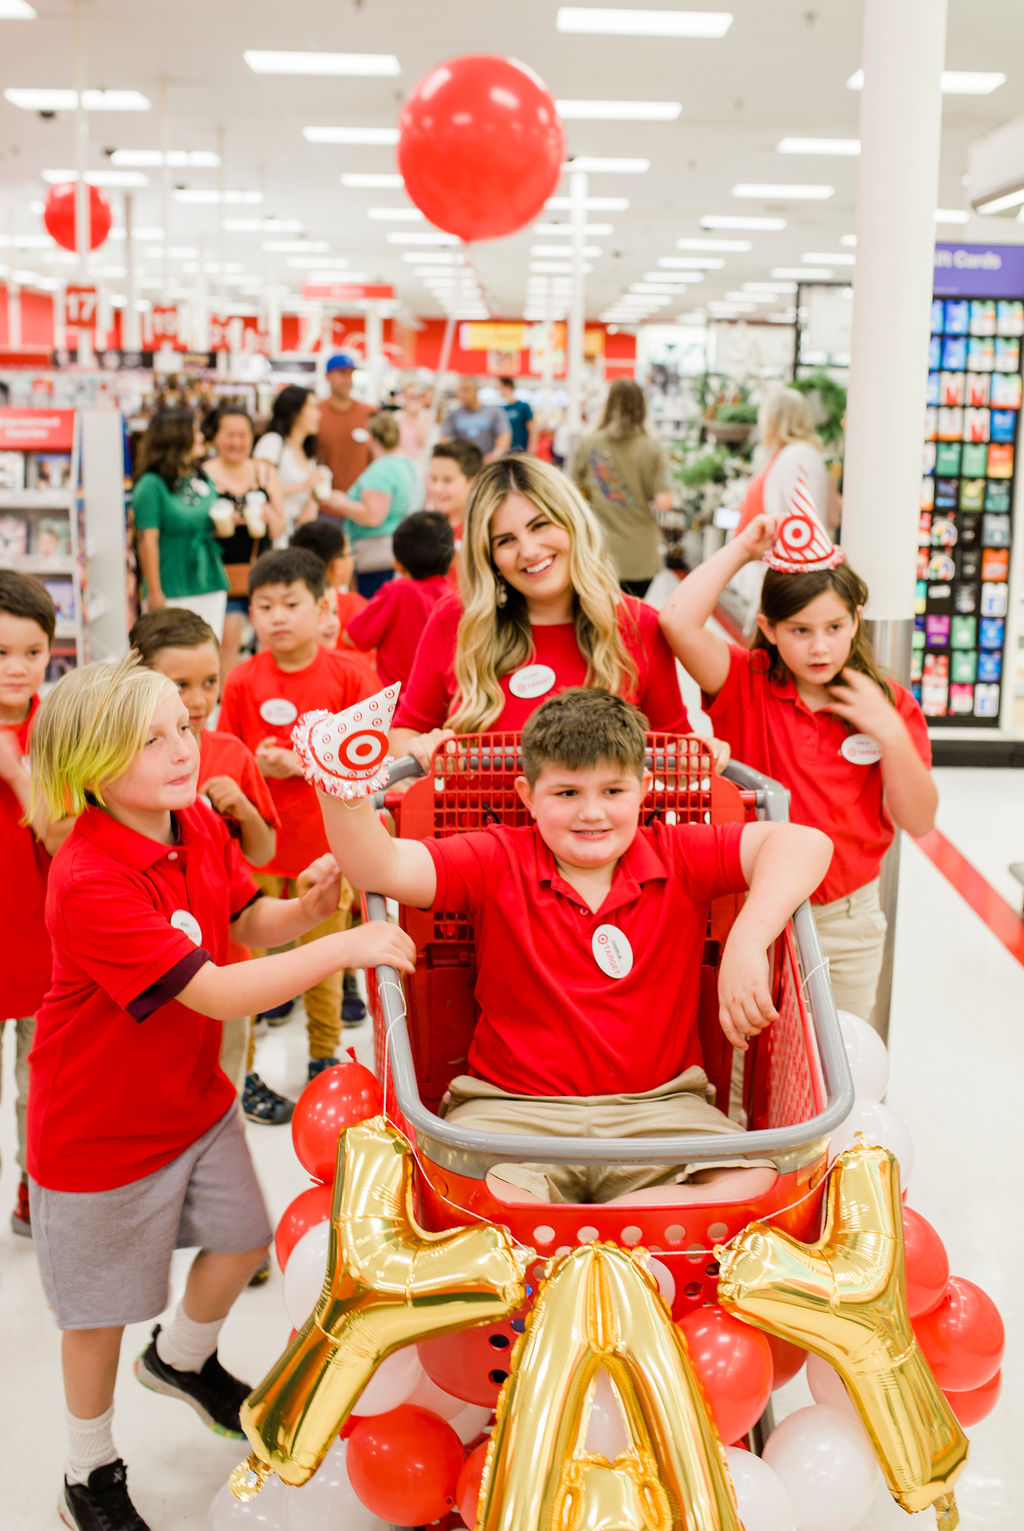 This Boy's Target-Themed Birthday Party Will Be the Envy of Bargain-Loving Moms Everywhere